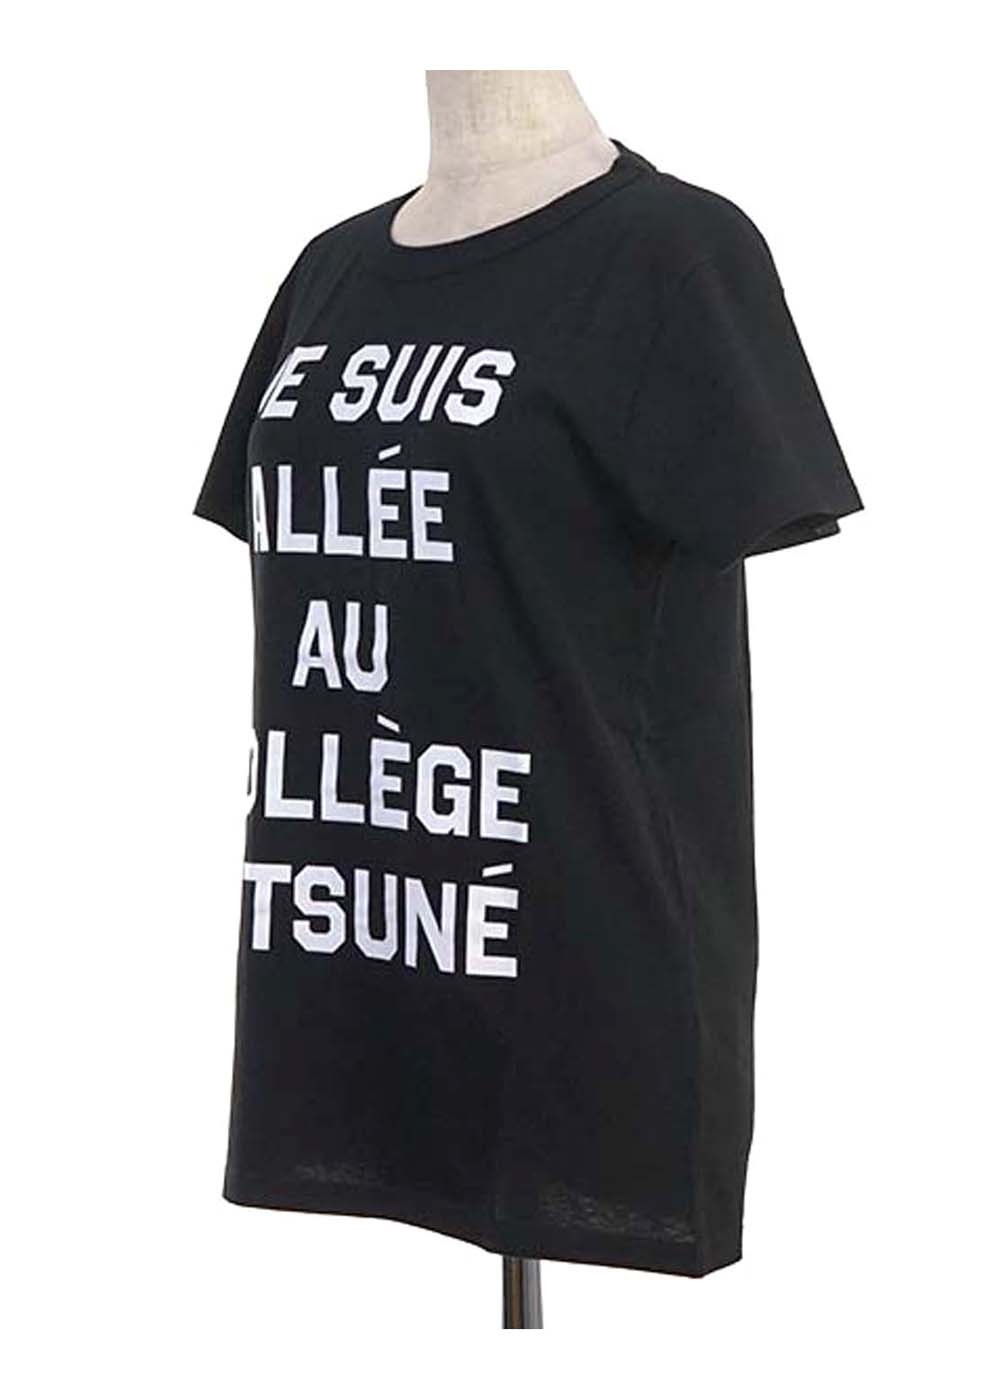 【最大35%OFF】TEE-SHIRT JE SUIS ALLEE|BLACK|Tシャツ|MAISON KITSUNE(C)